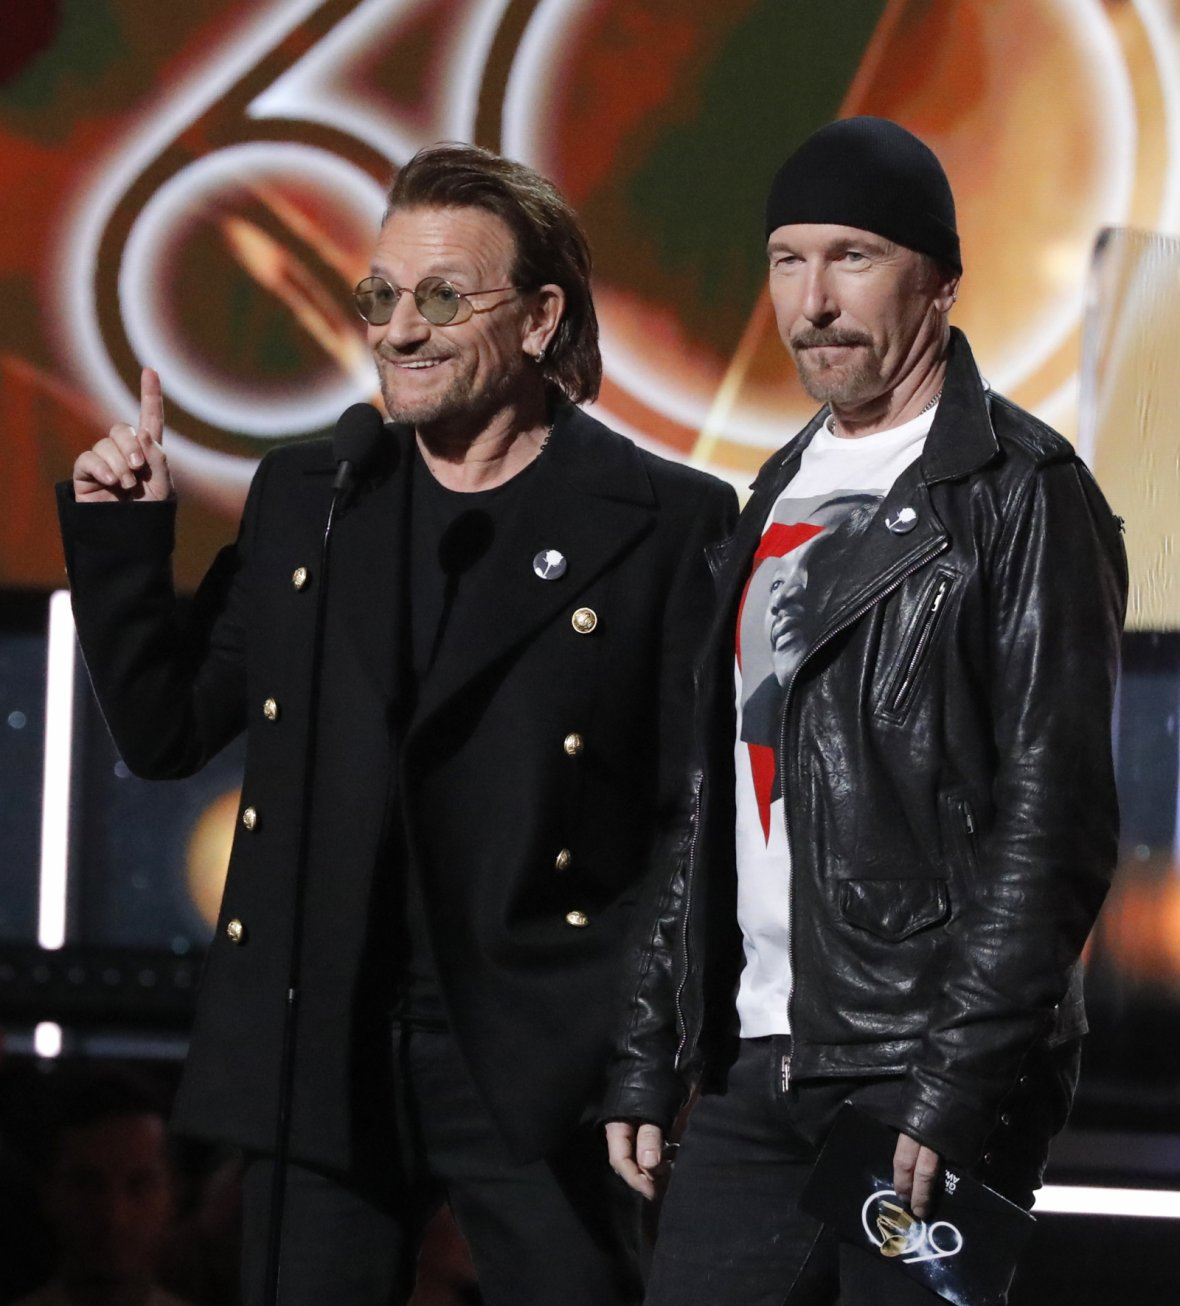 Bono (L) and the Edge present the award for album of the year